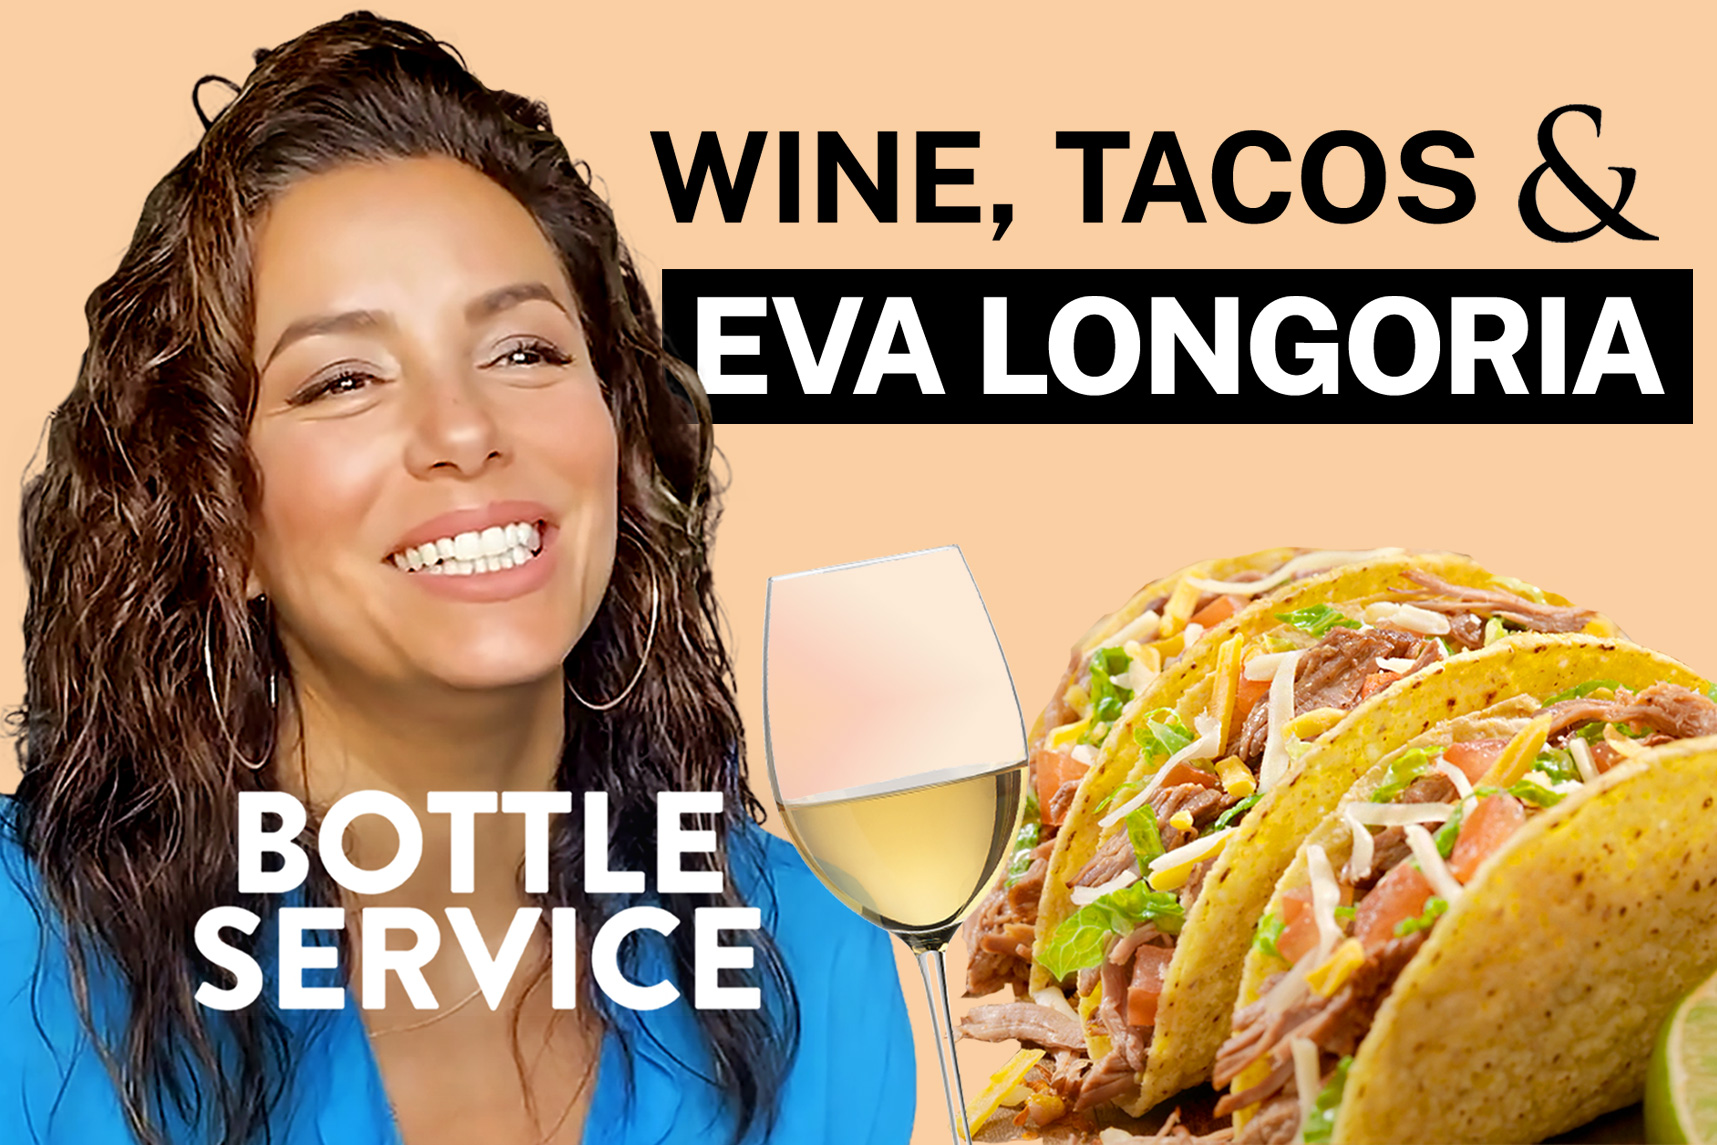 Bottle Service featuring Eva Longoria